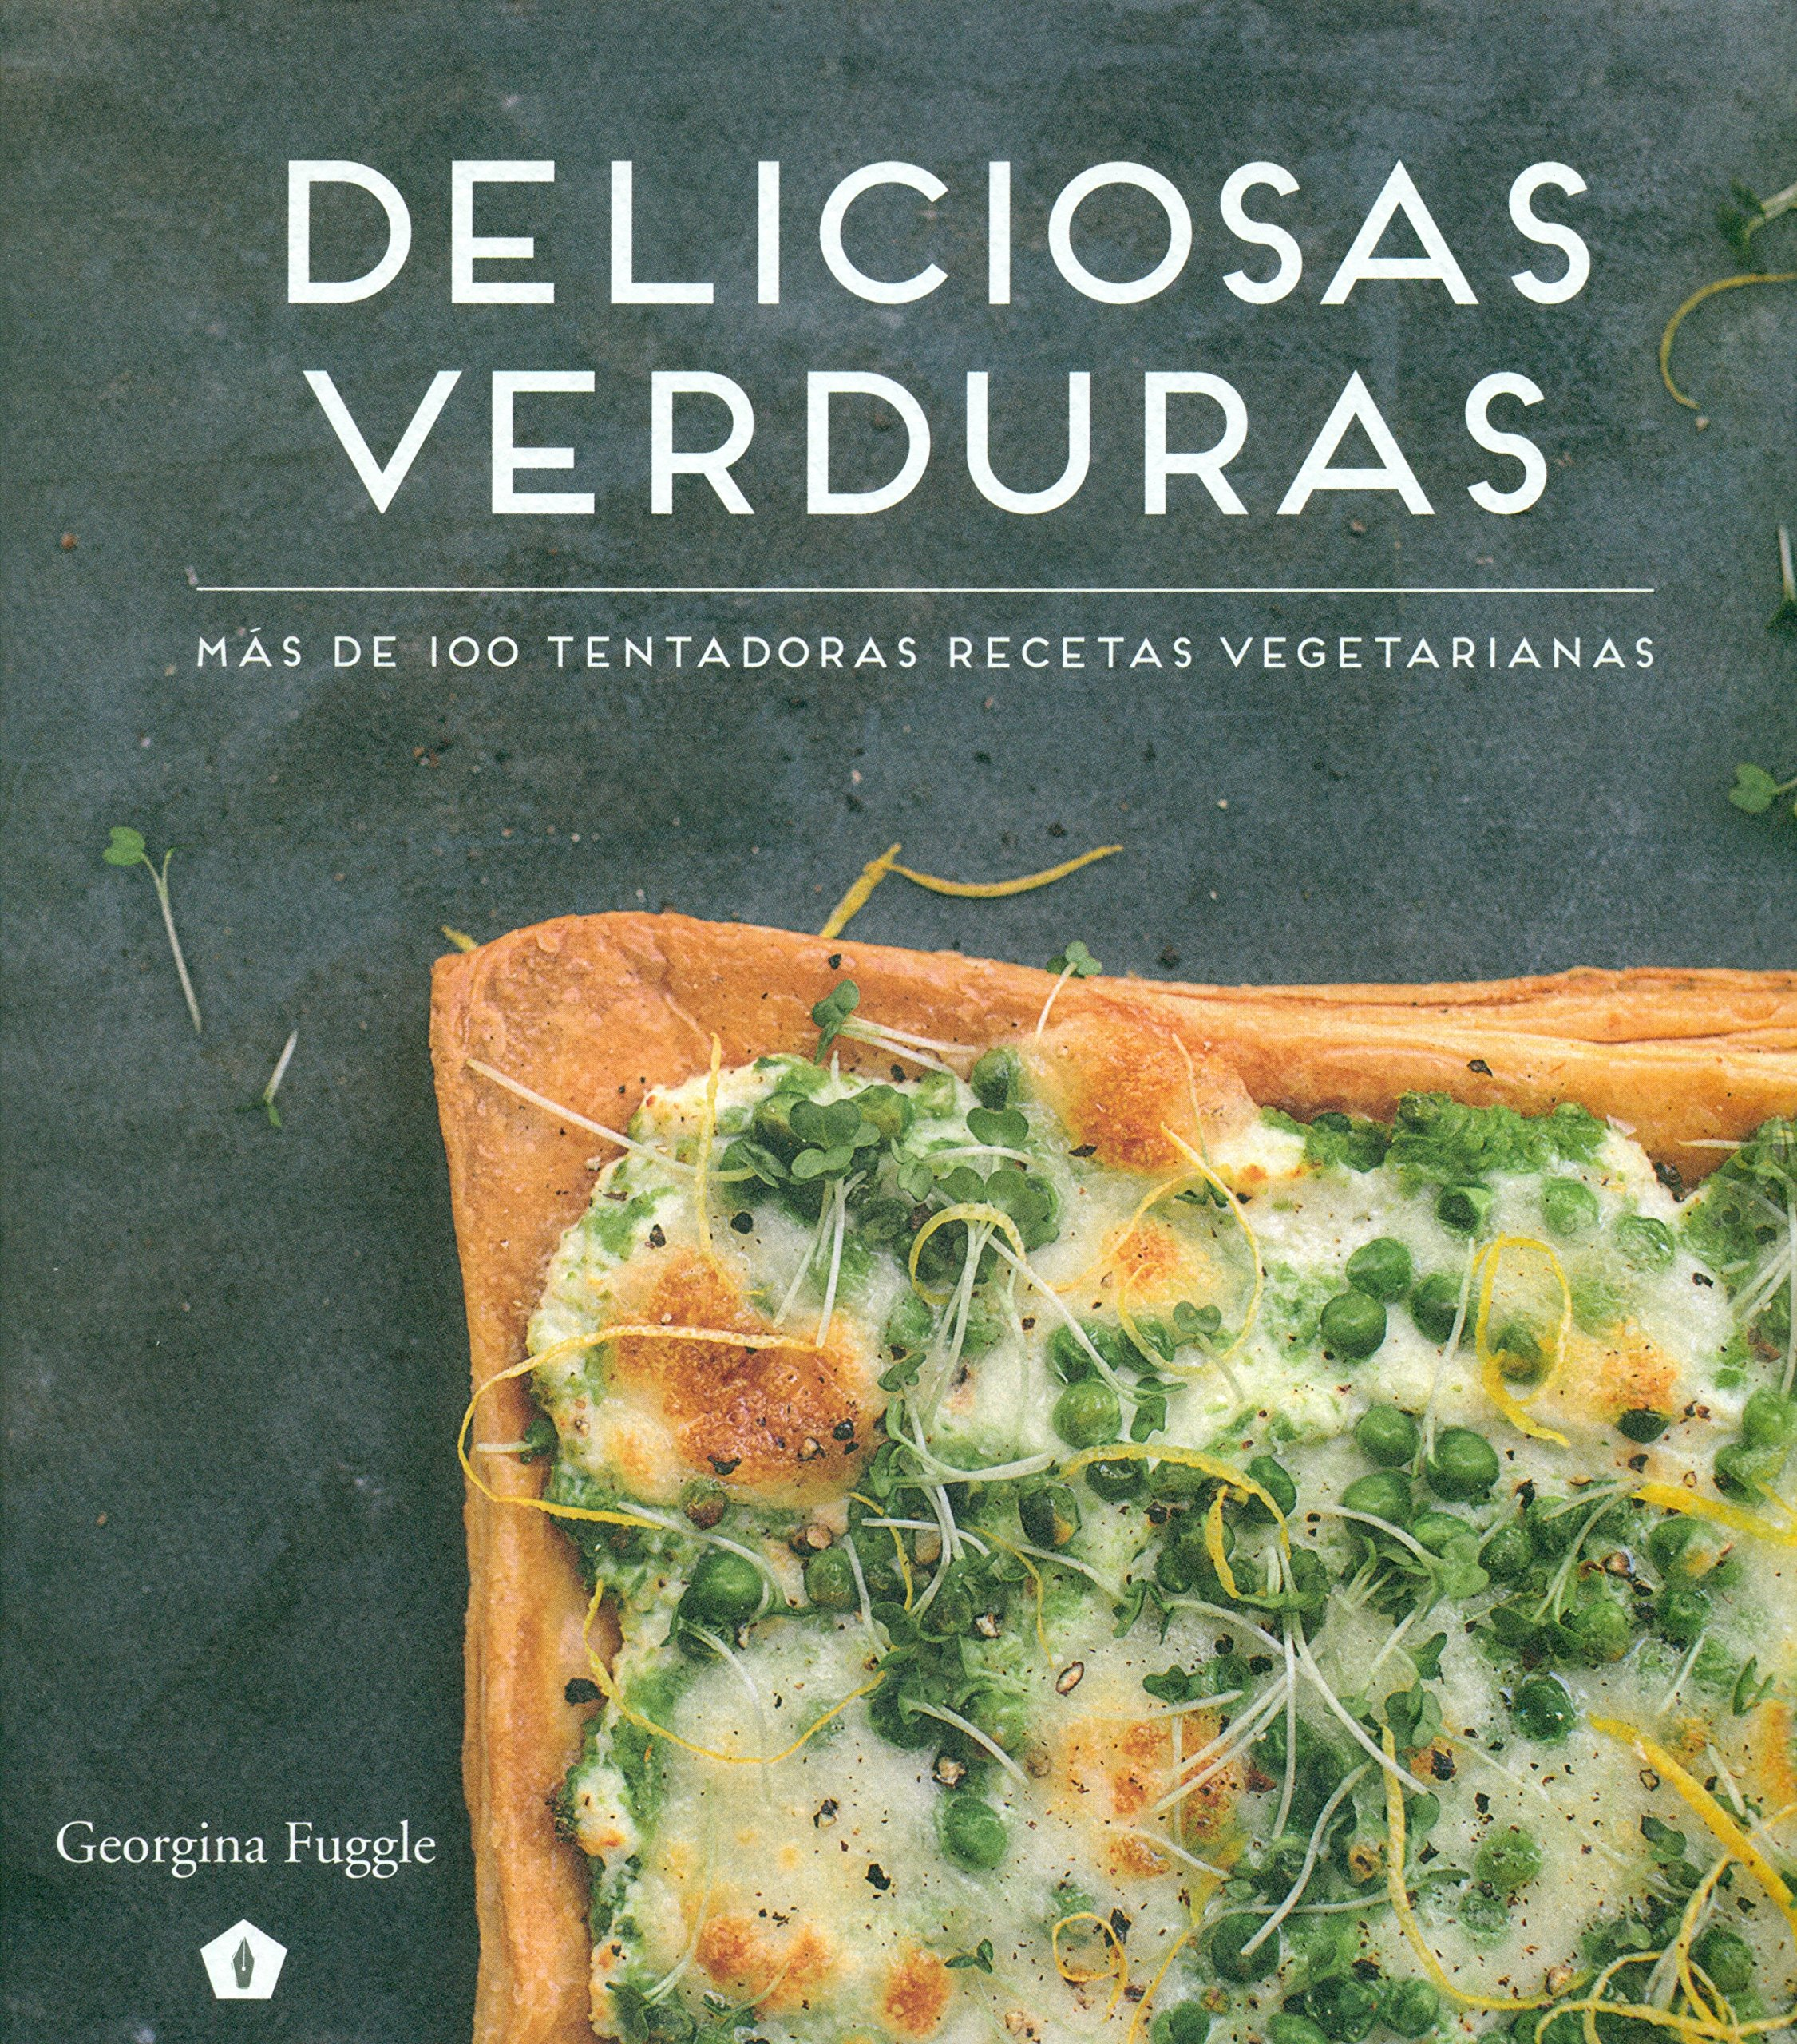 Deliciosas verduras (Spanish Edition) (Spanish) Flexibound – March 1, 2016